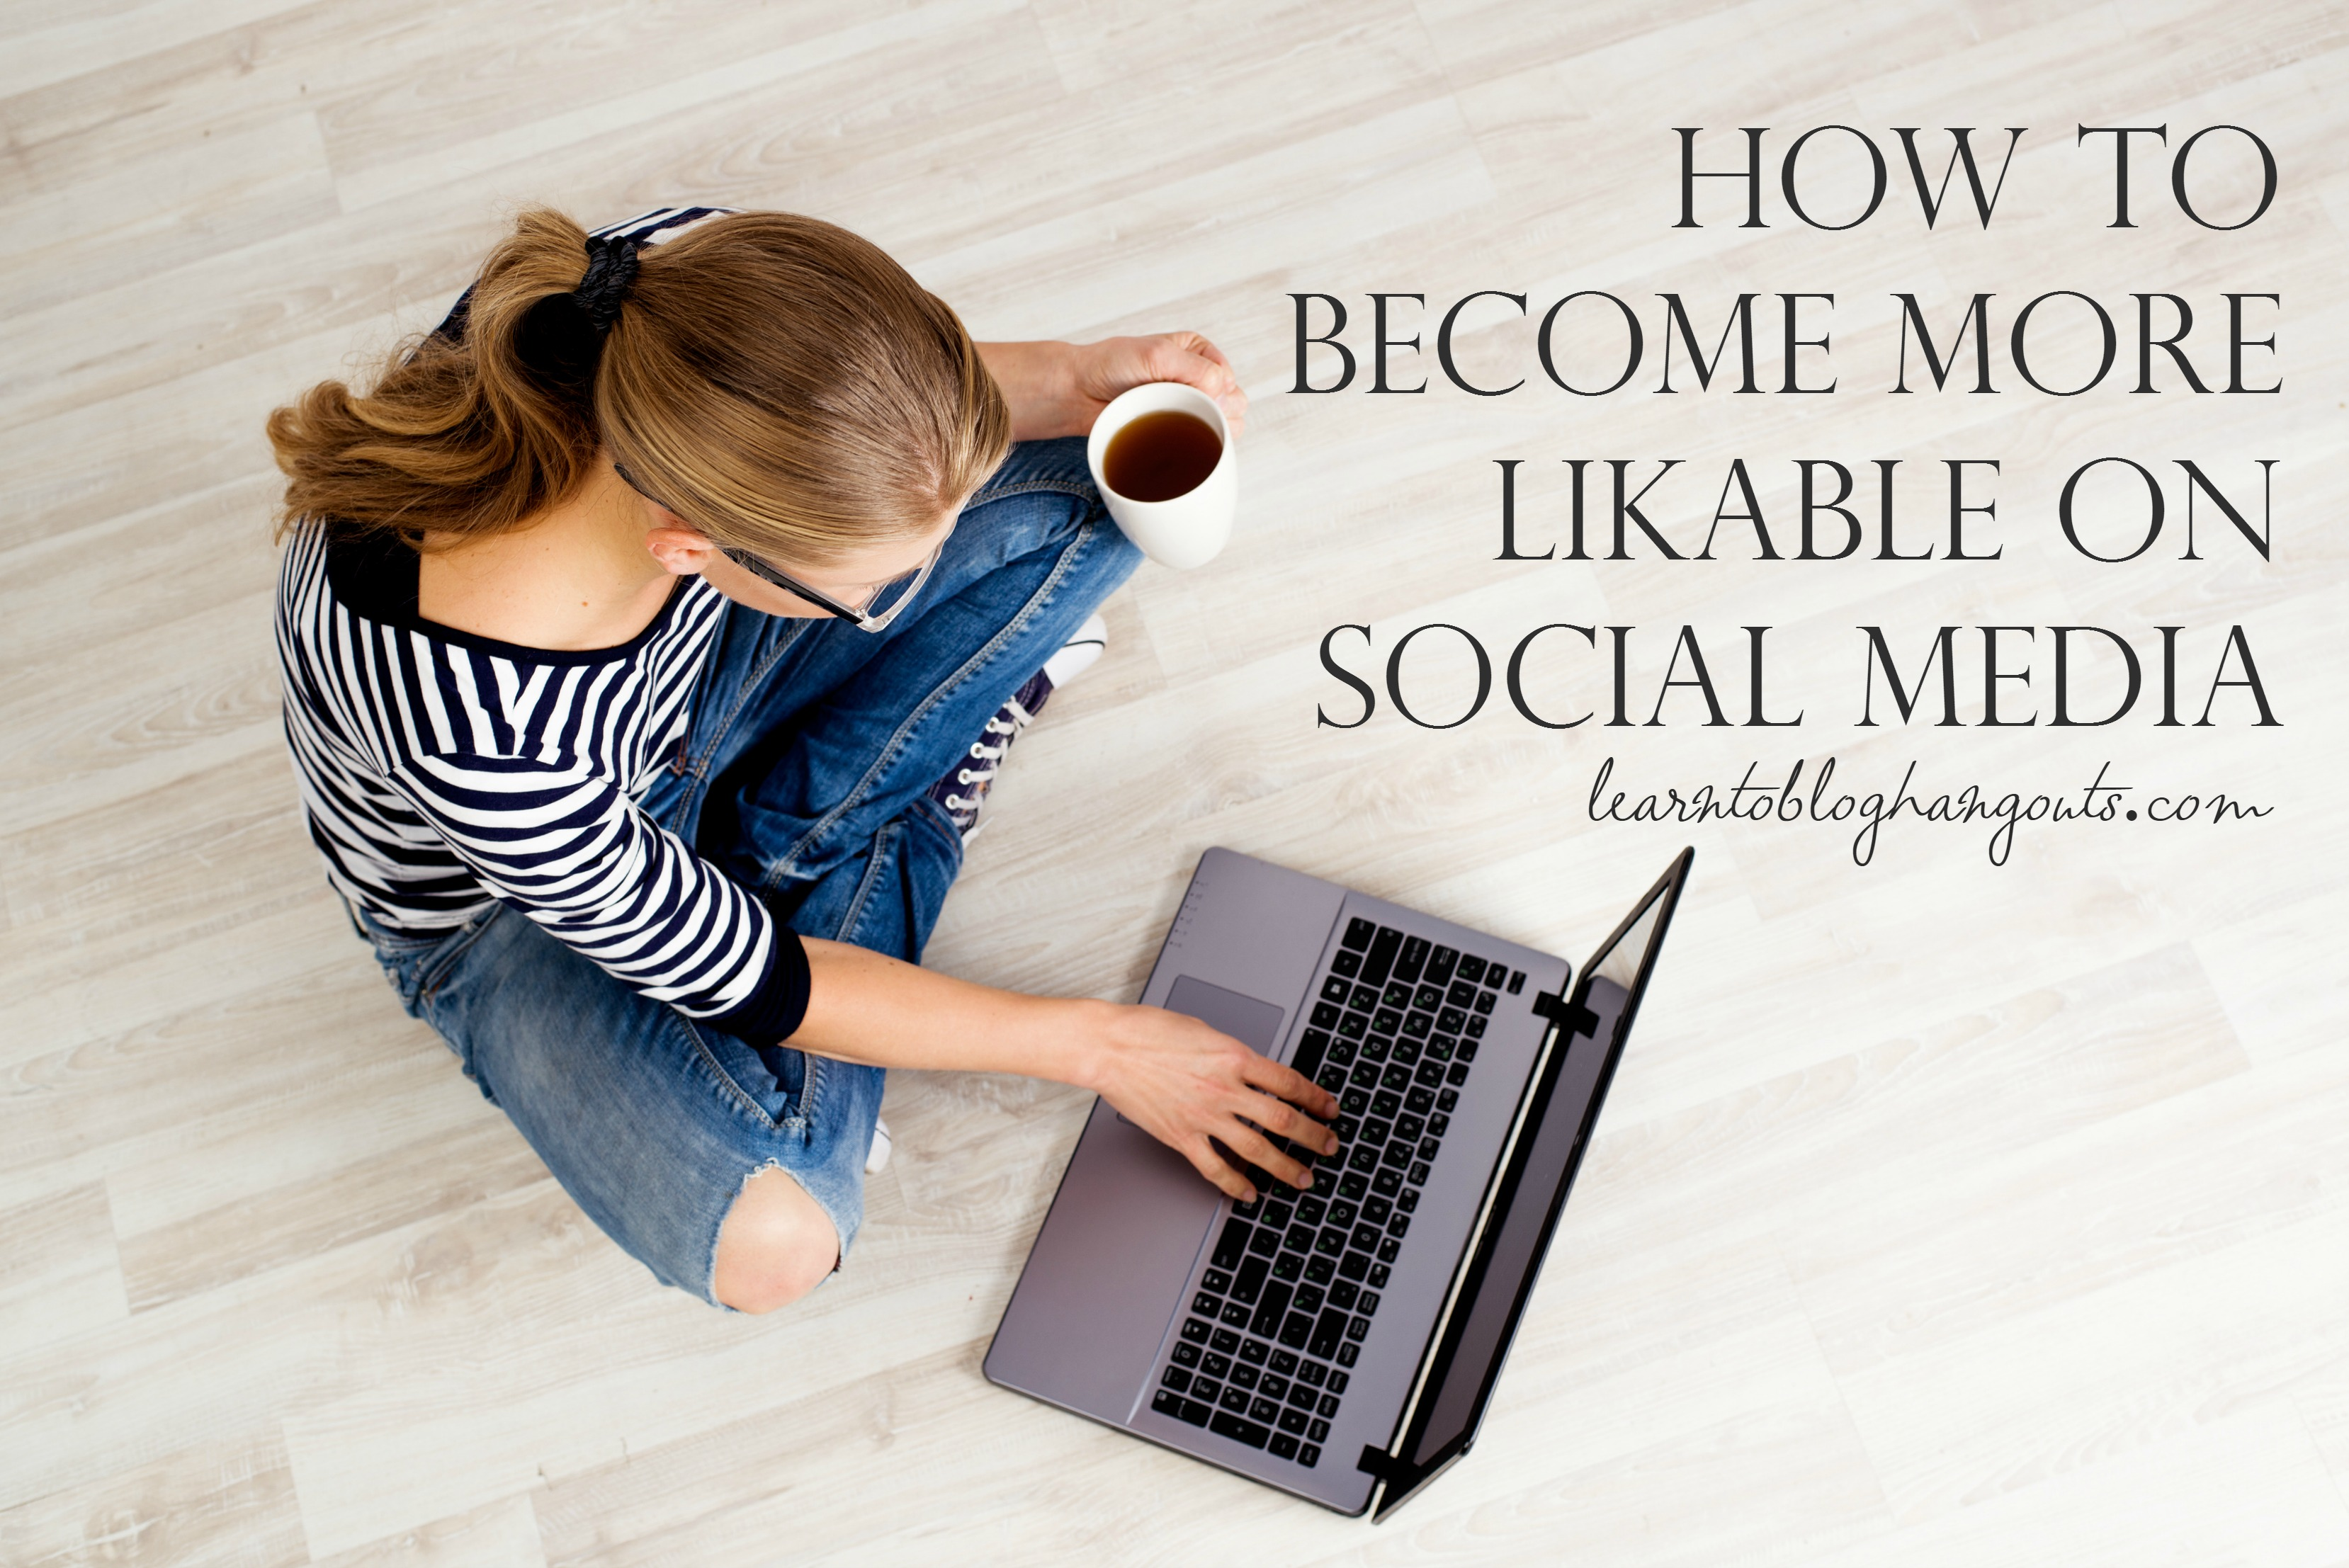 how to become more likeable on social media